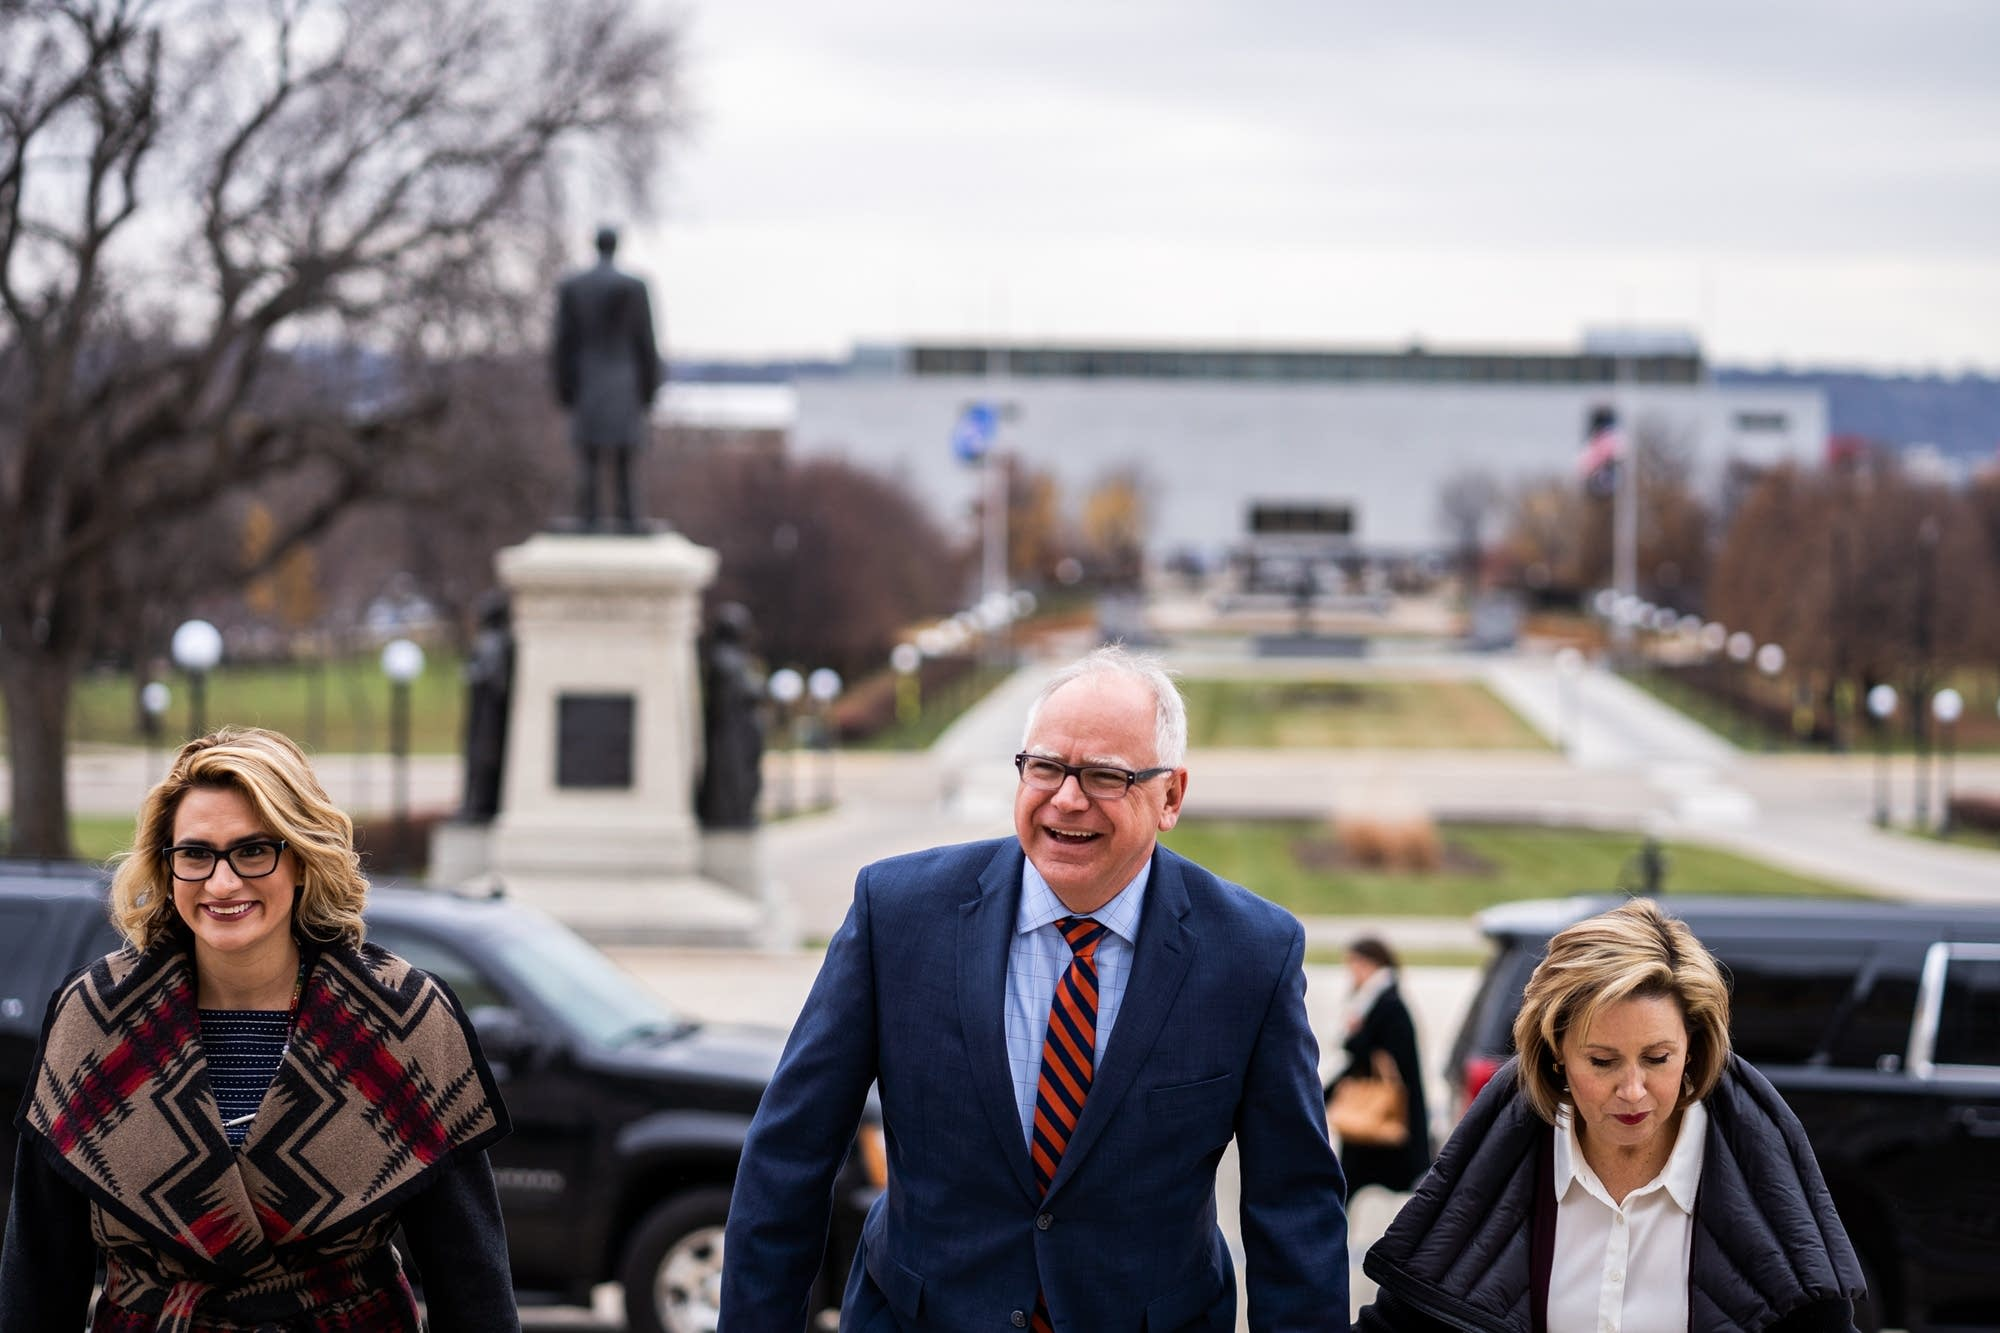 Lt. Governor-elect Peggy Flanagan, Governor-elect Tim Walz and Gwen Walz.